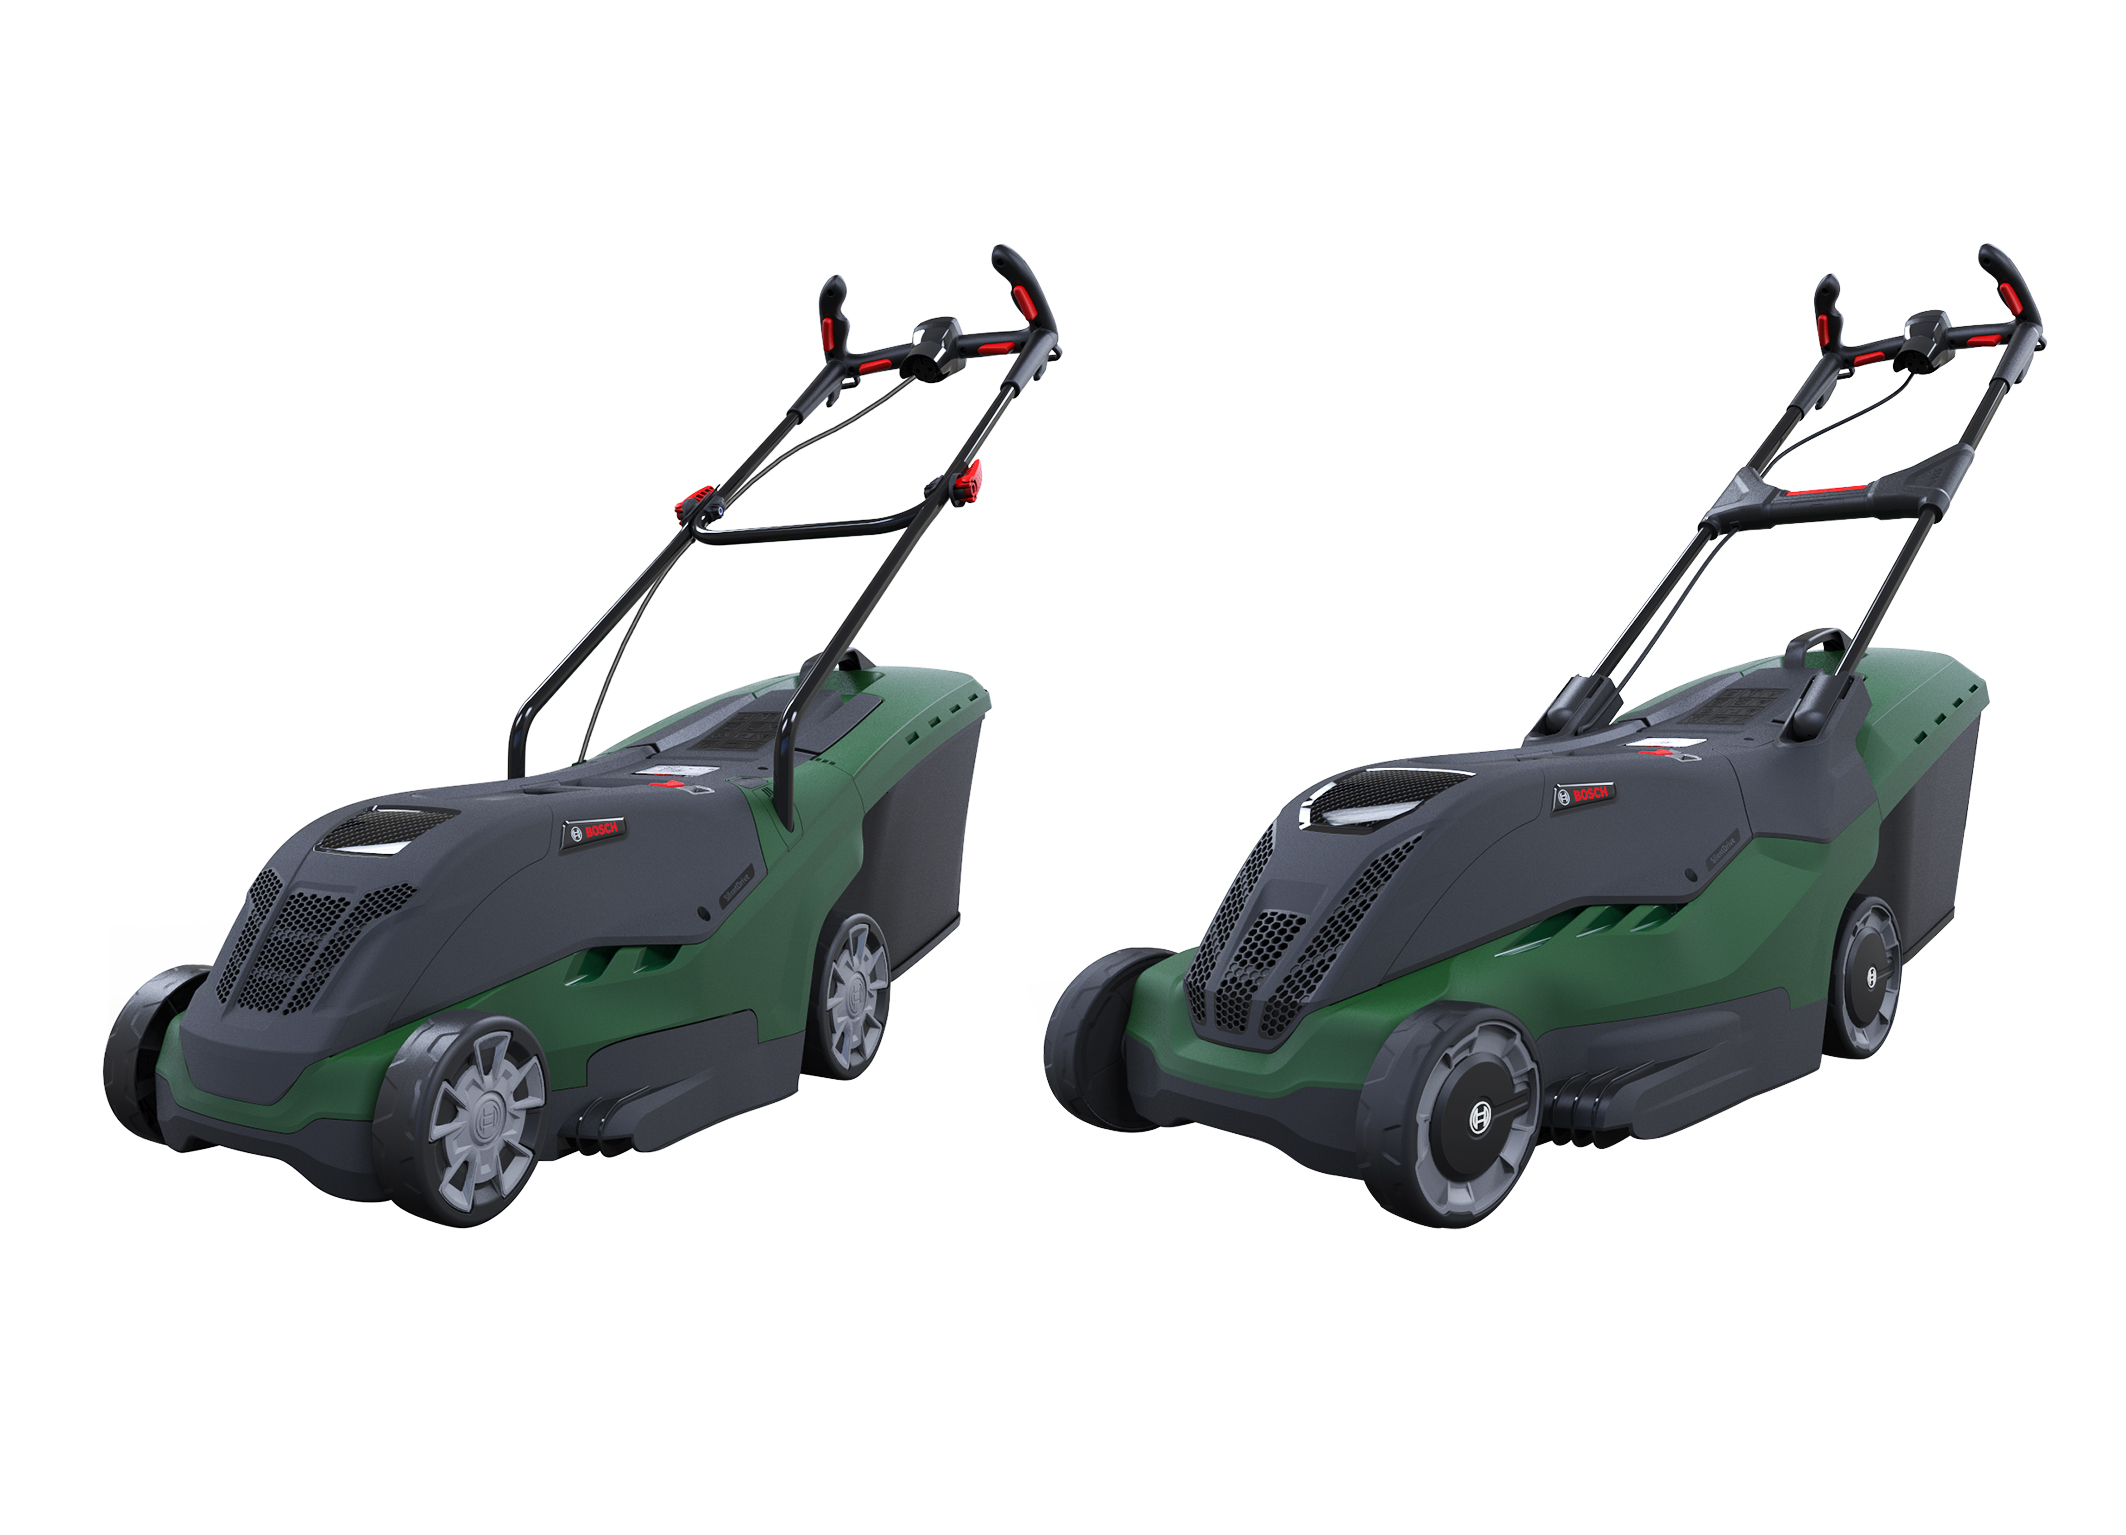 The quietest high-performance lawnmower on the market: The new Rotak series from Bosch